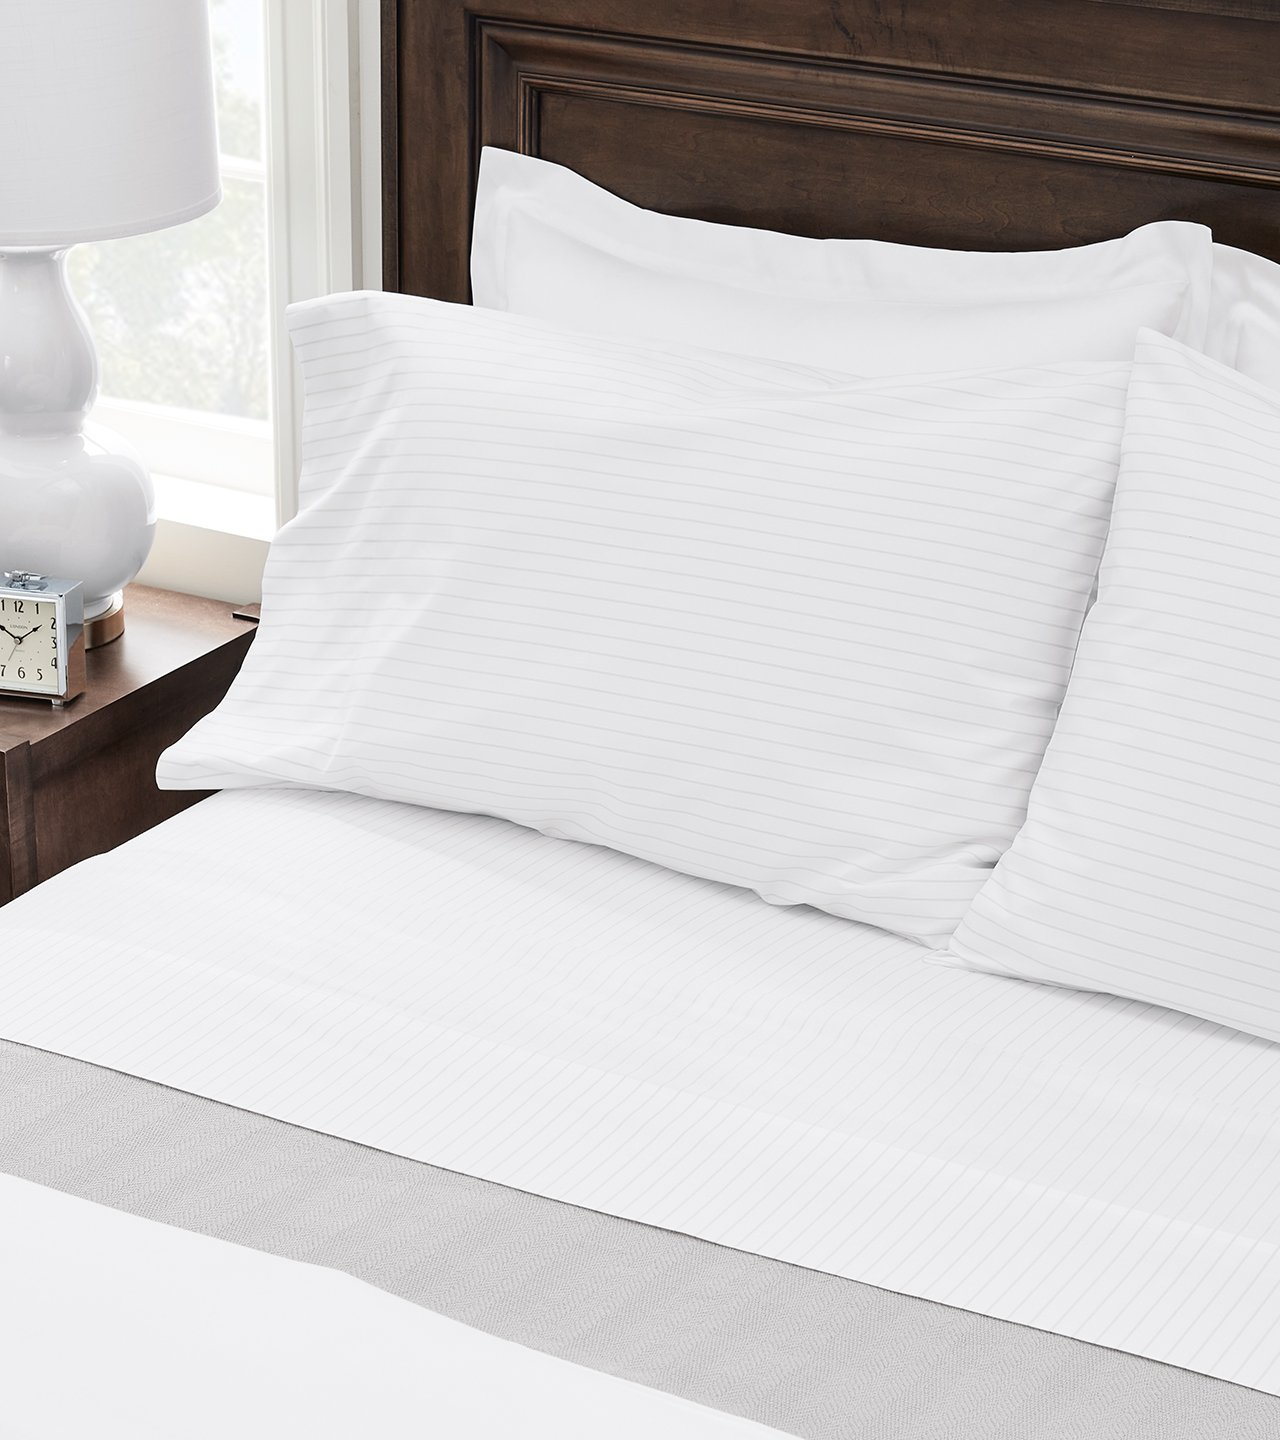 Bed made with Percale Tailored Sheet Set in White